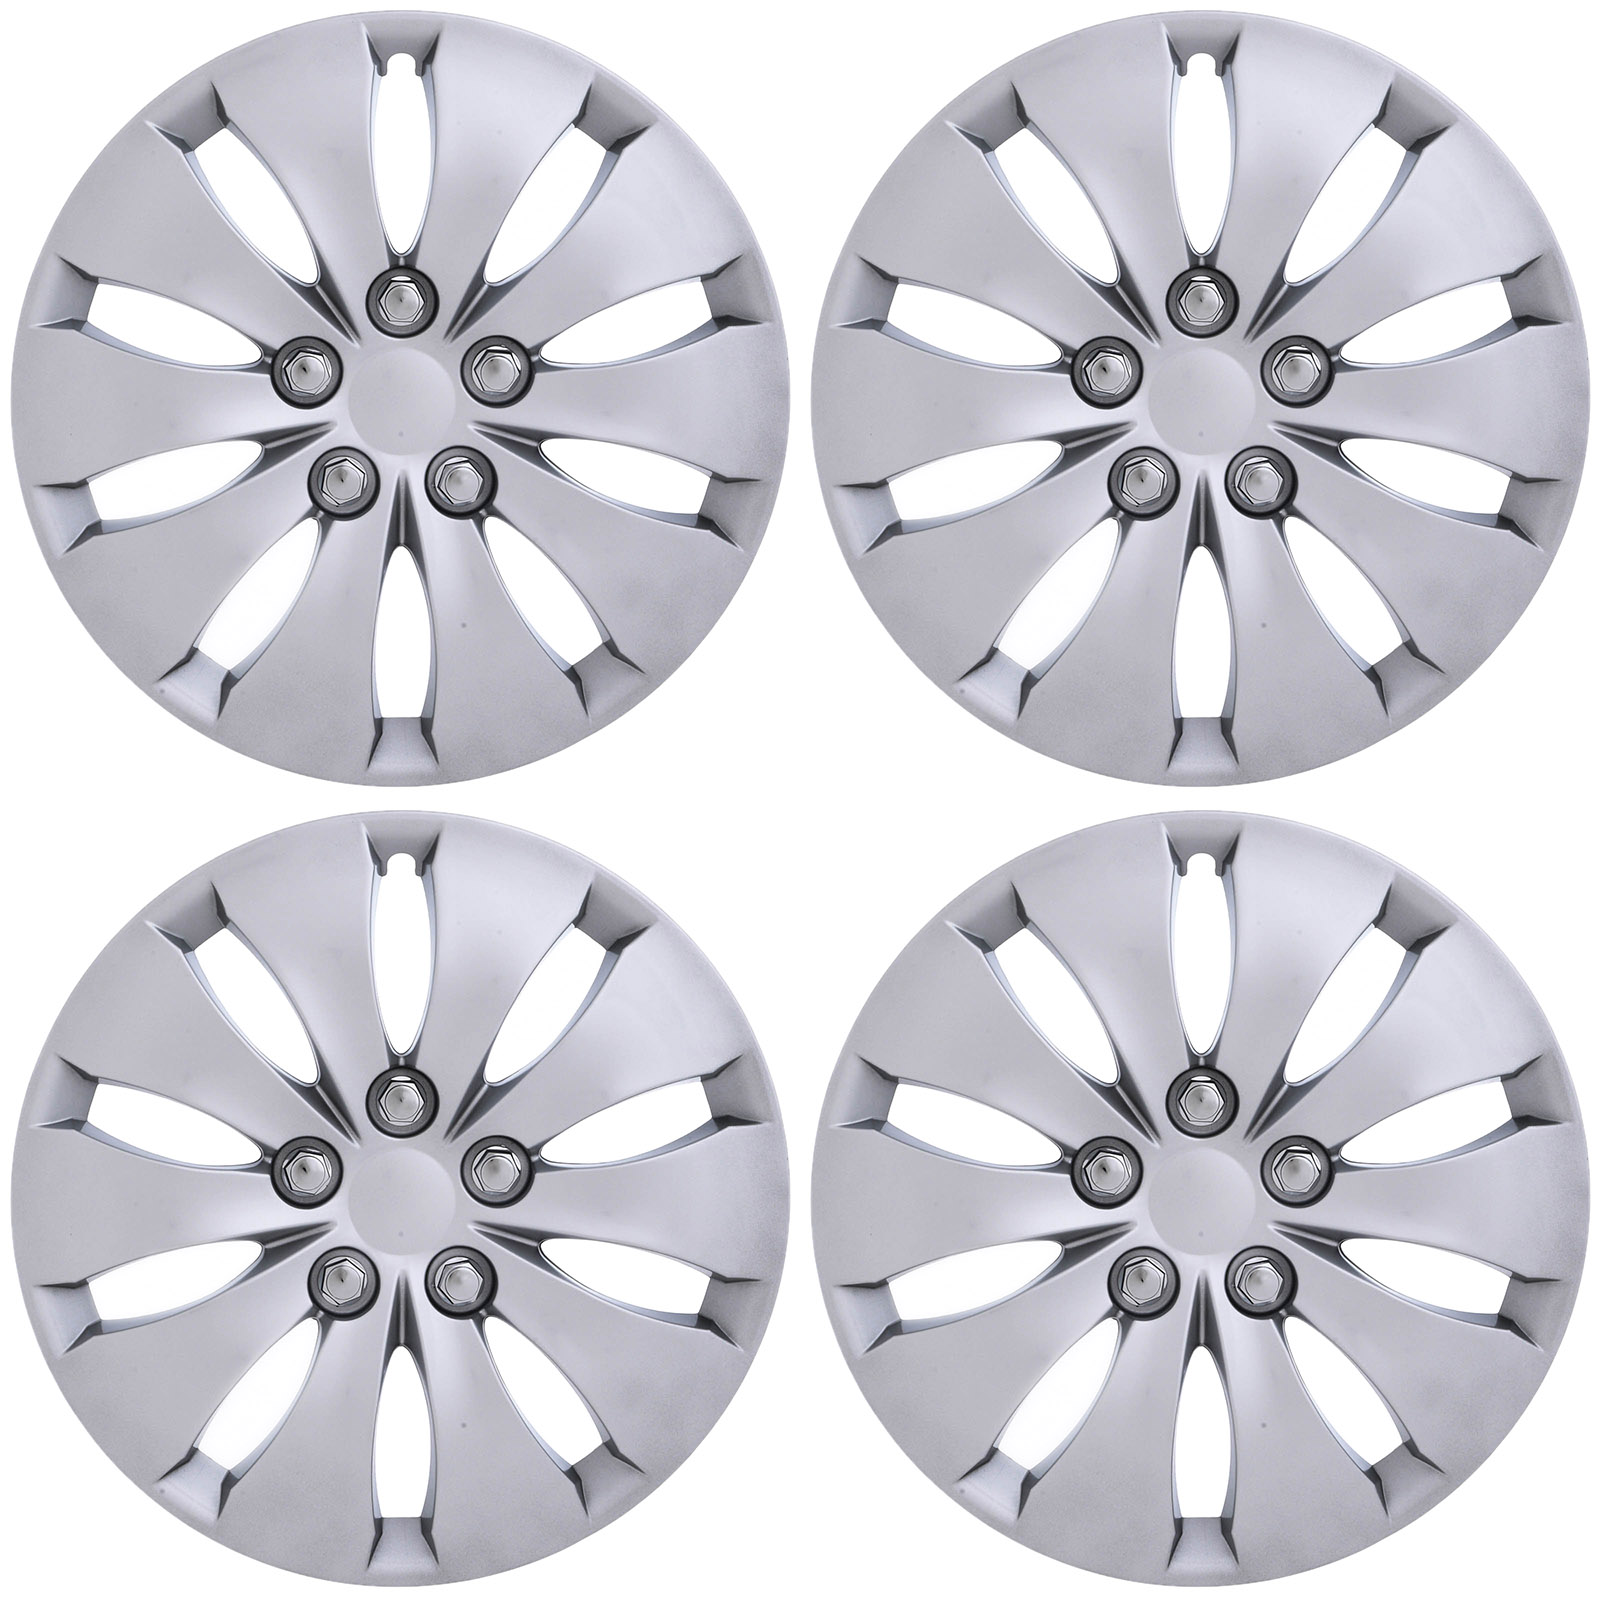 """CoverTrend (Set of 4 Pack) fits 2008 2009 2011 2012 HONDA ACCORD 16"""" INCH Replica Snap On (Metal Clip) SILVER Hub Caps - Wheel Covers - Cap (Replaces 44733TA0A00, 44733TA5A00)"""